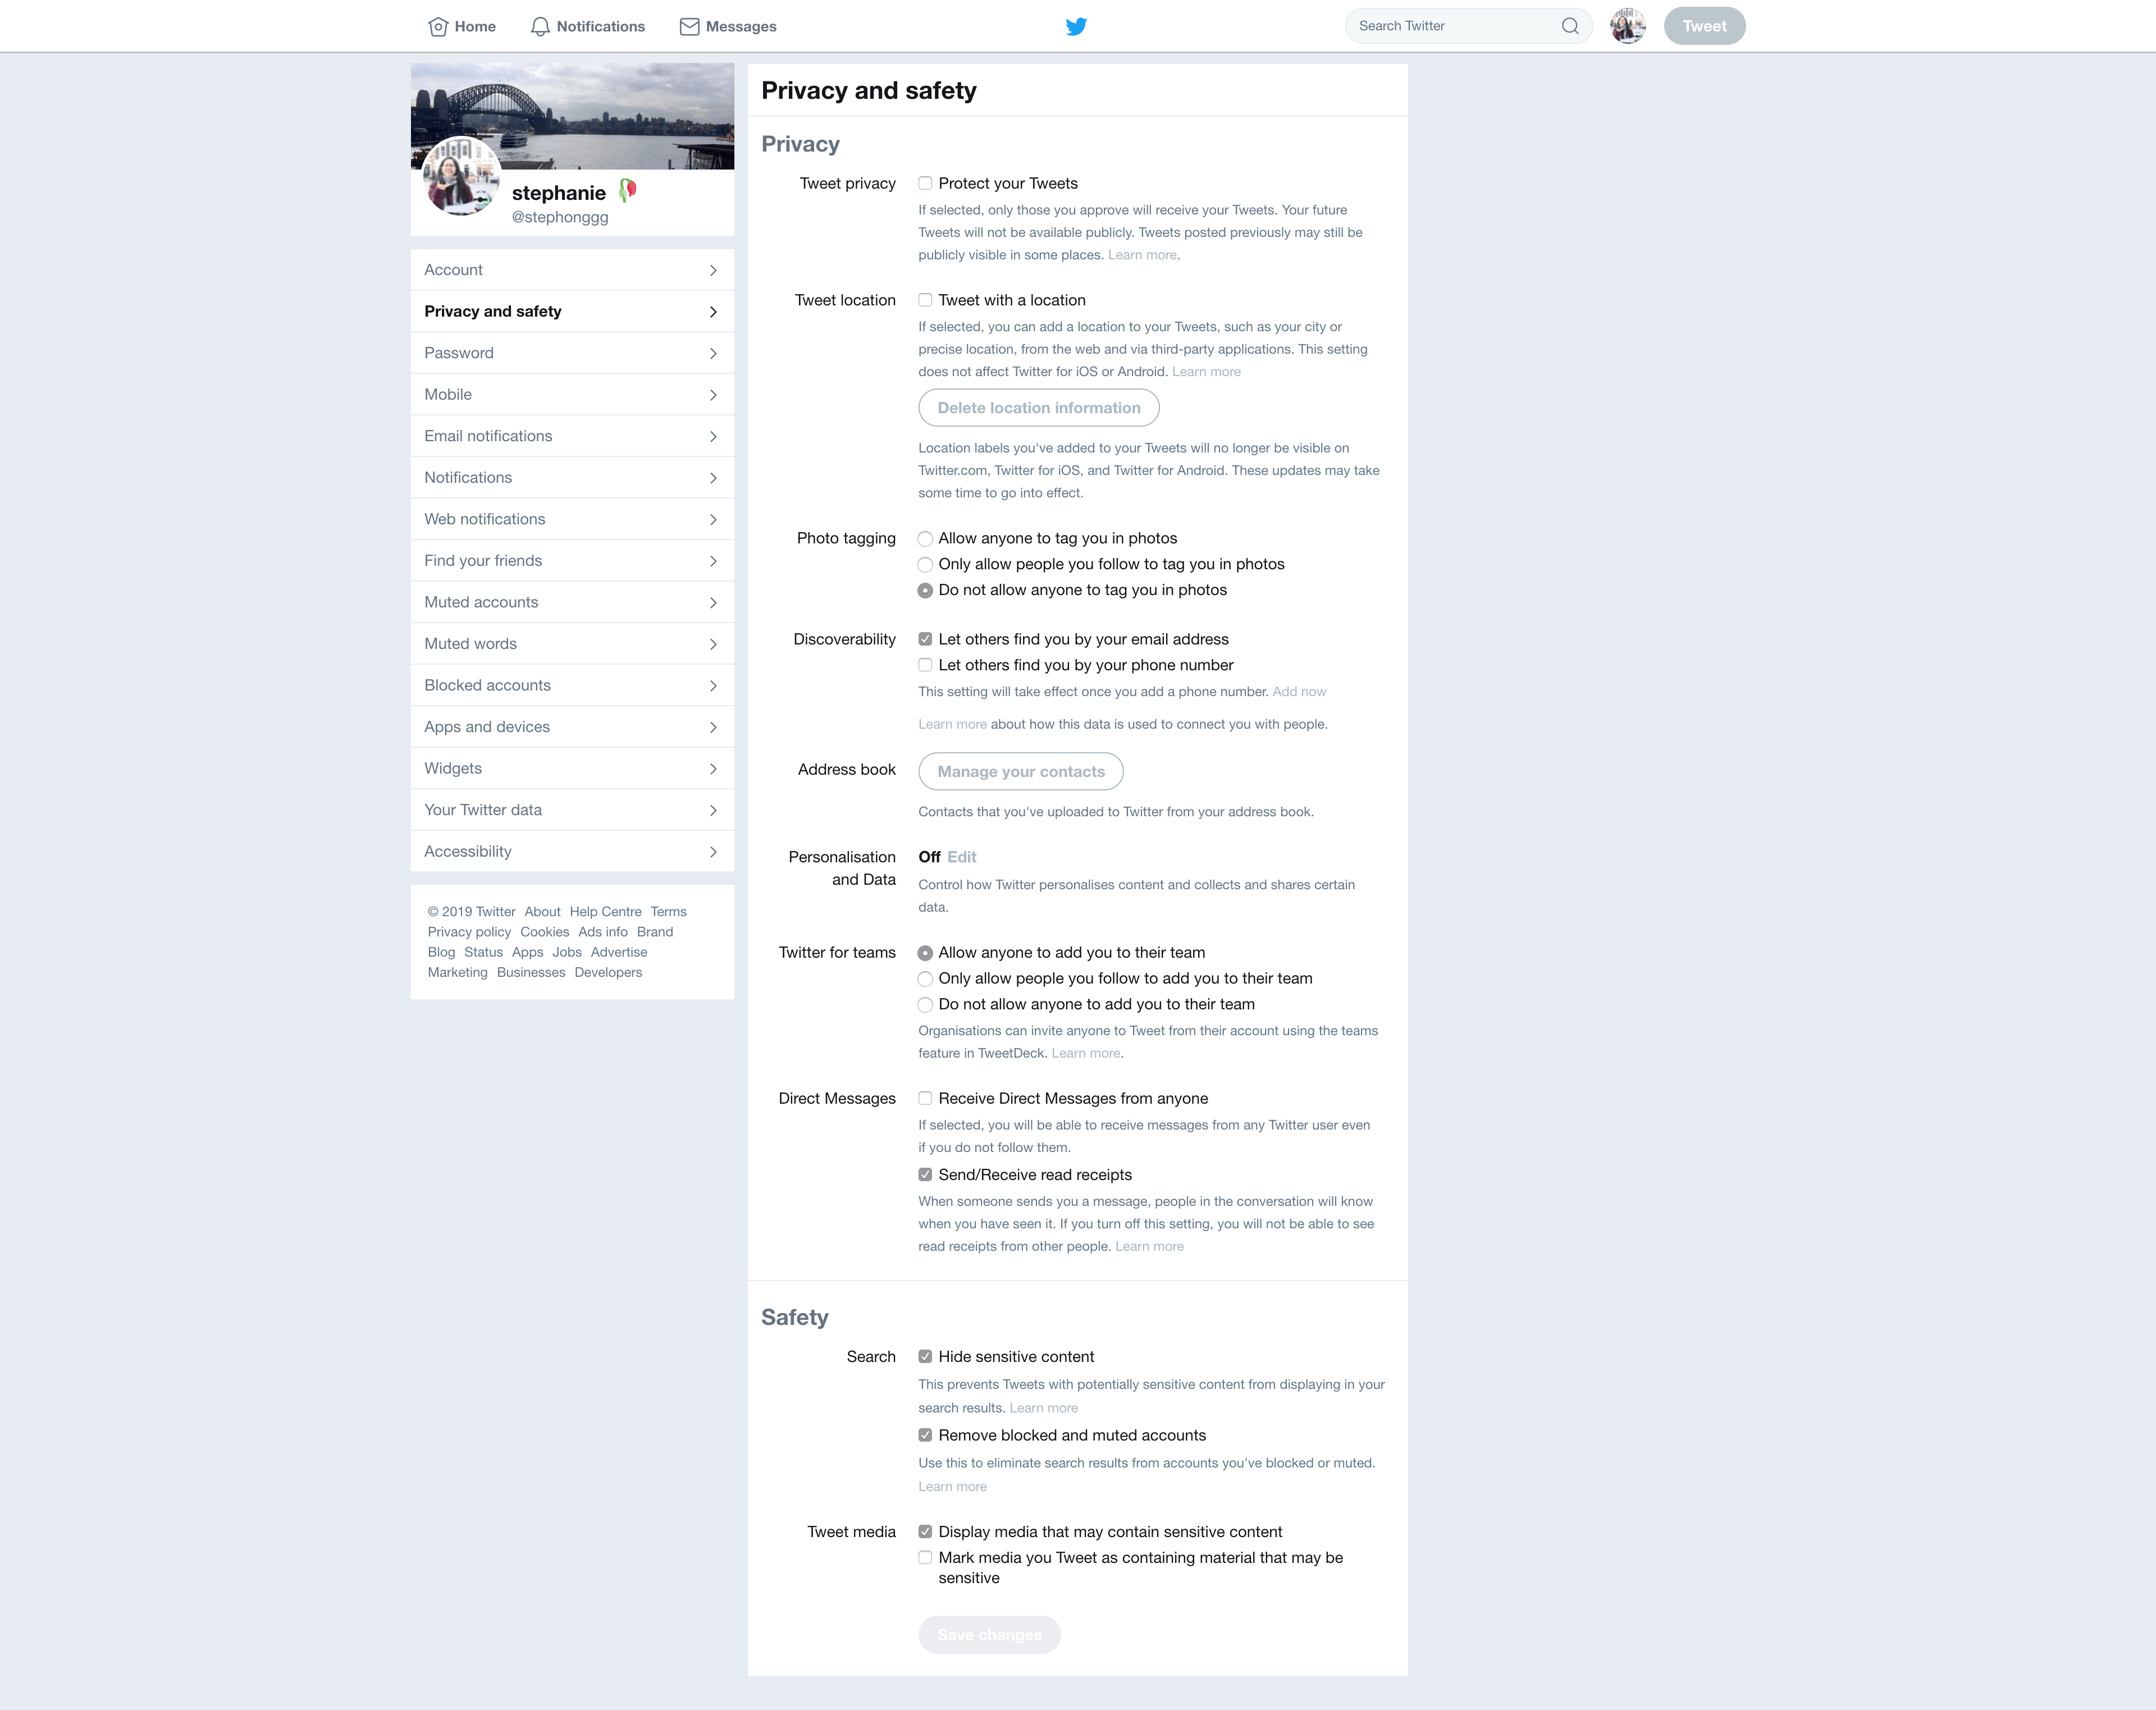 Privacy and Safety Settings by Twitter from UIGarage